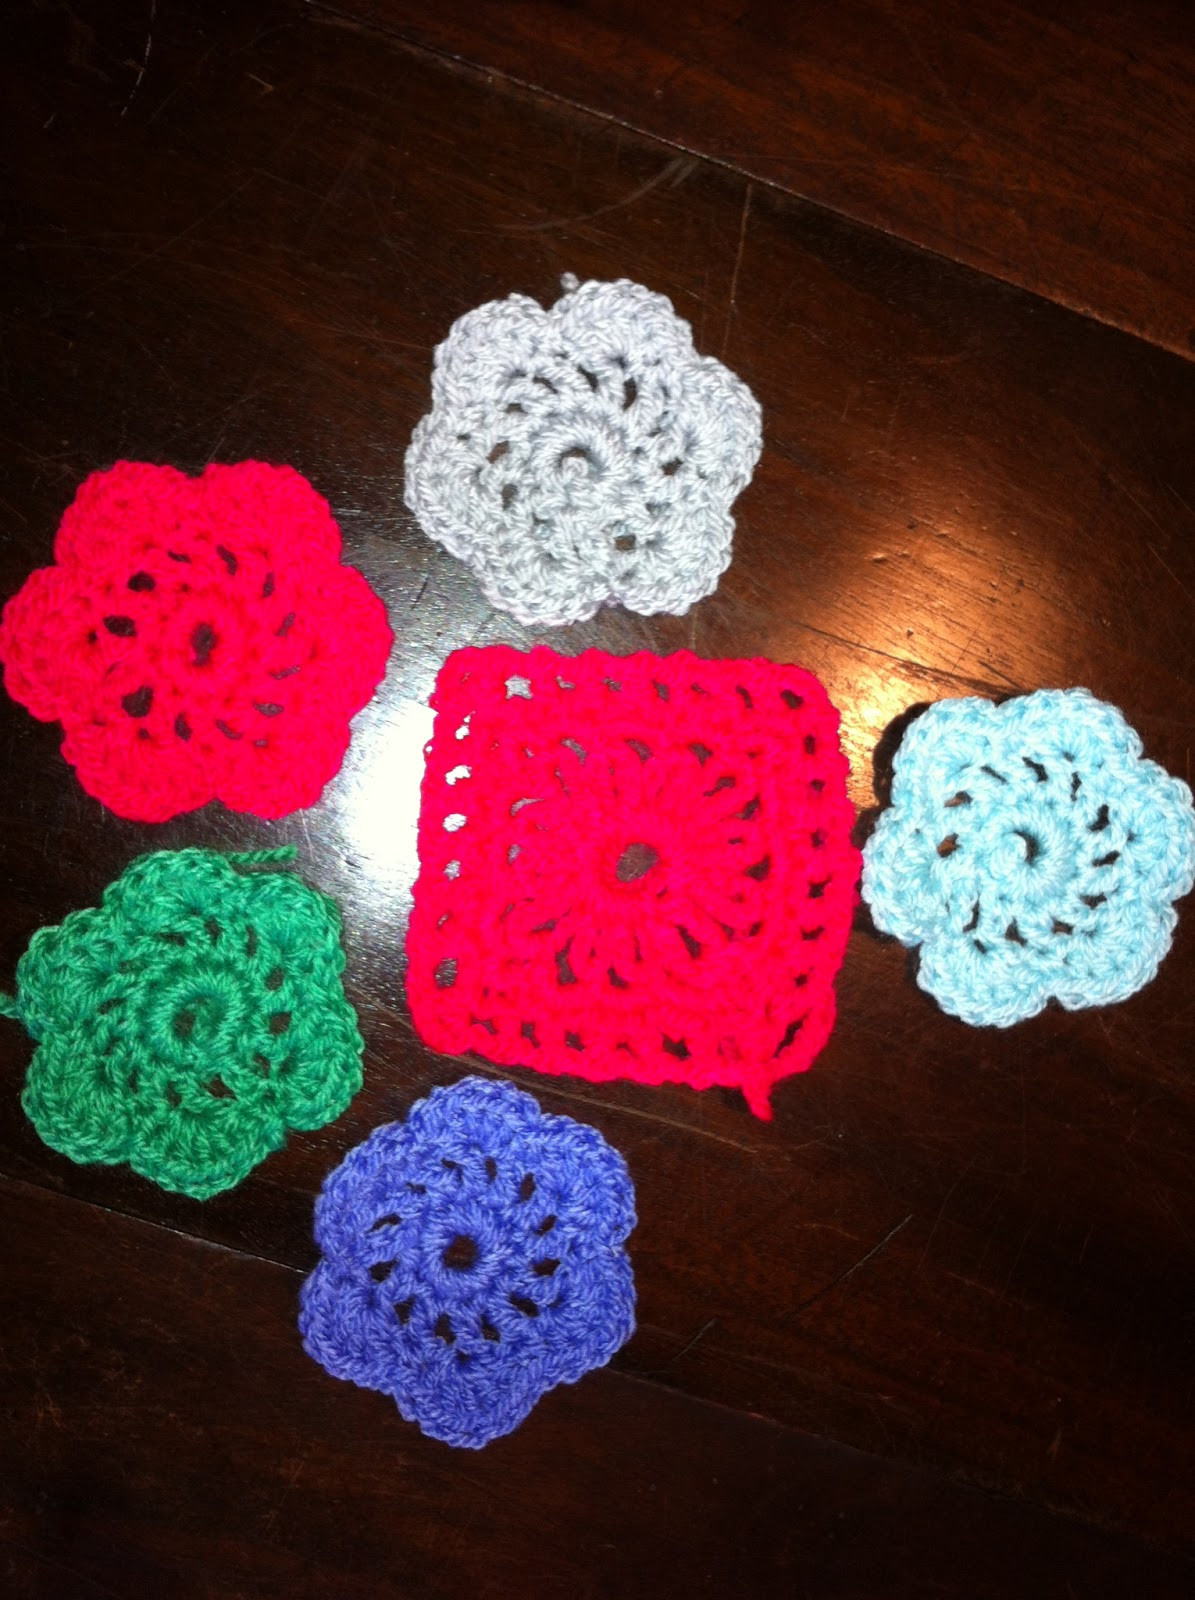 Inspirational Get Hooked On Crochet Day 67 top 10 Crochet Blogs Hooked On Crochet Of Wonderful 44 Models Hooked On Crochet